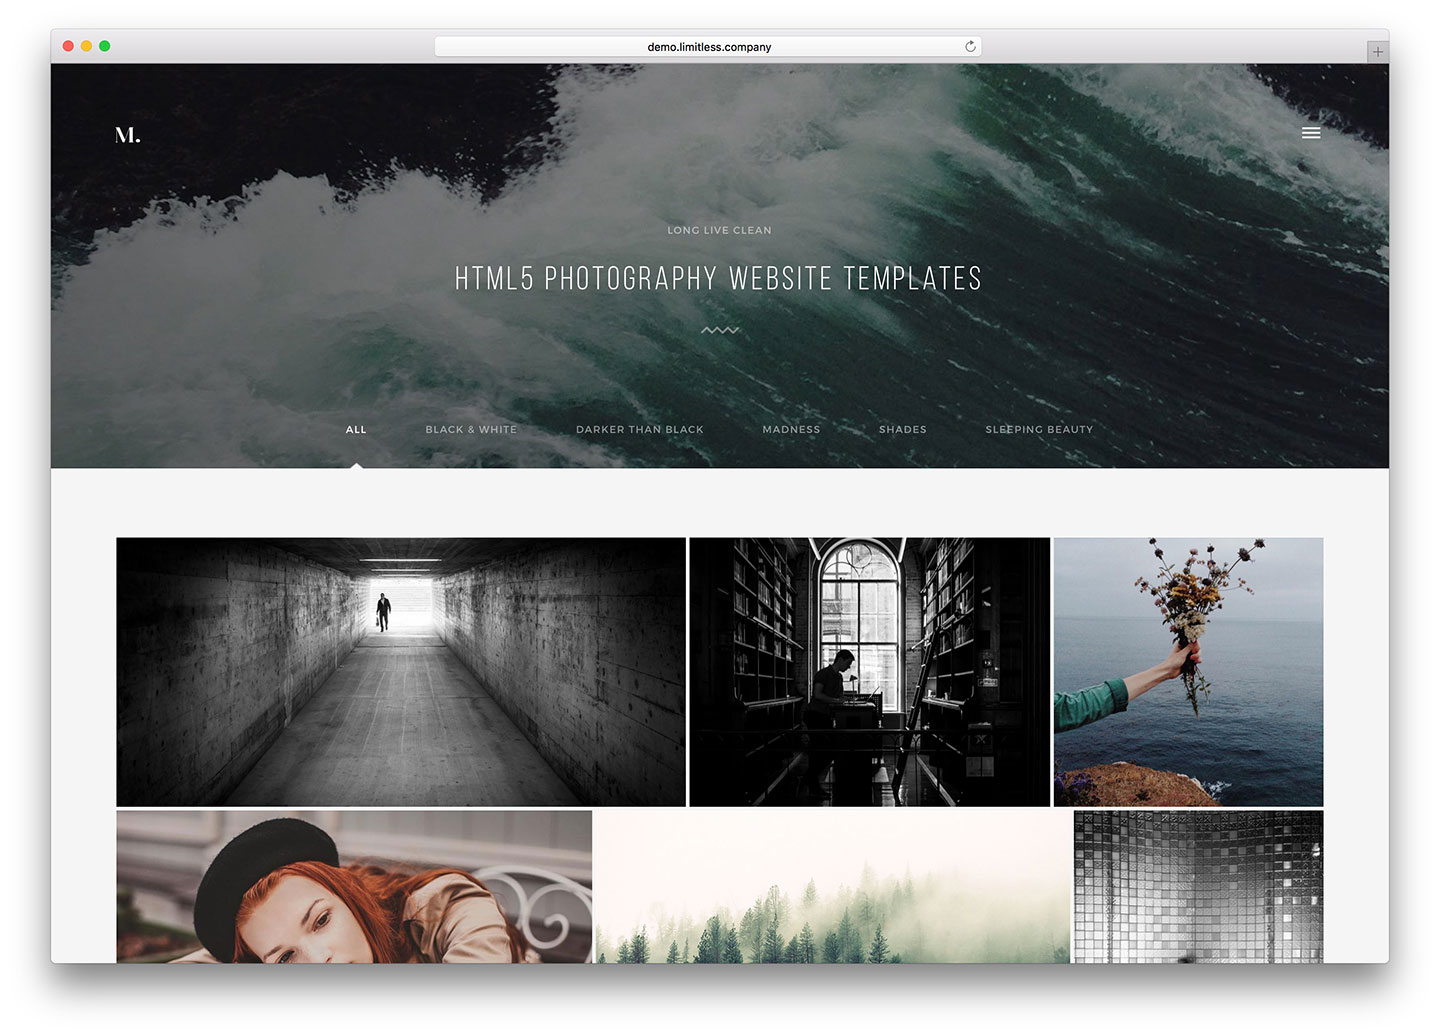 Top 34 HTML5/CSS3 Photography Website Templates For Professional And Hobby Photographers 2018